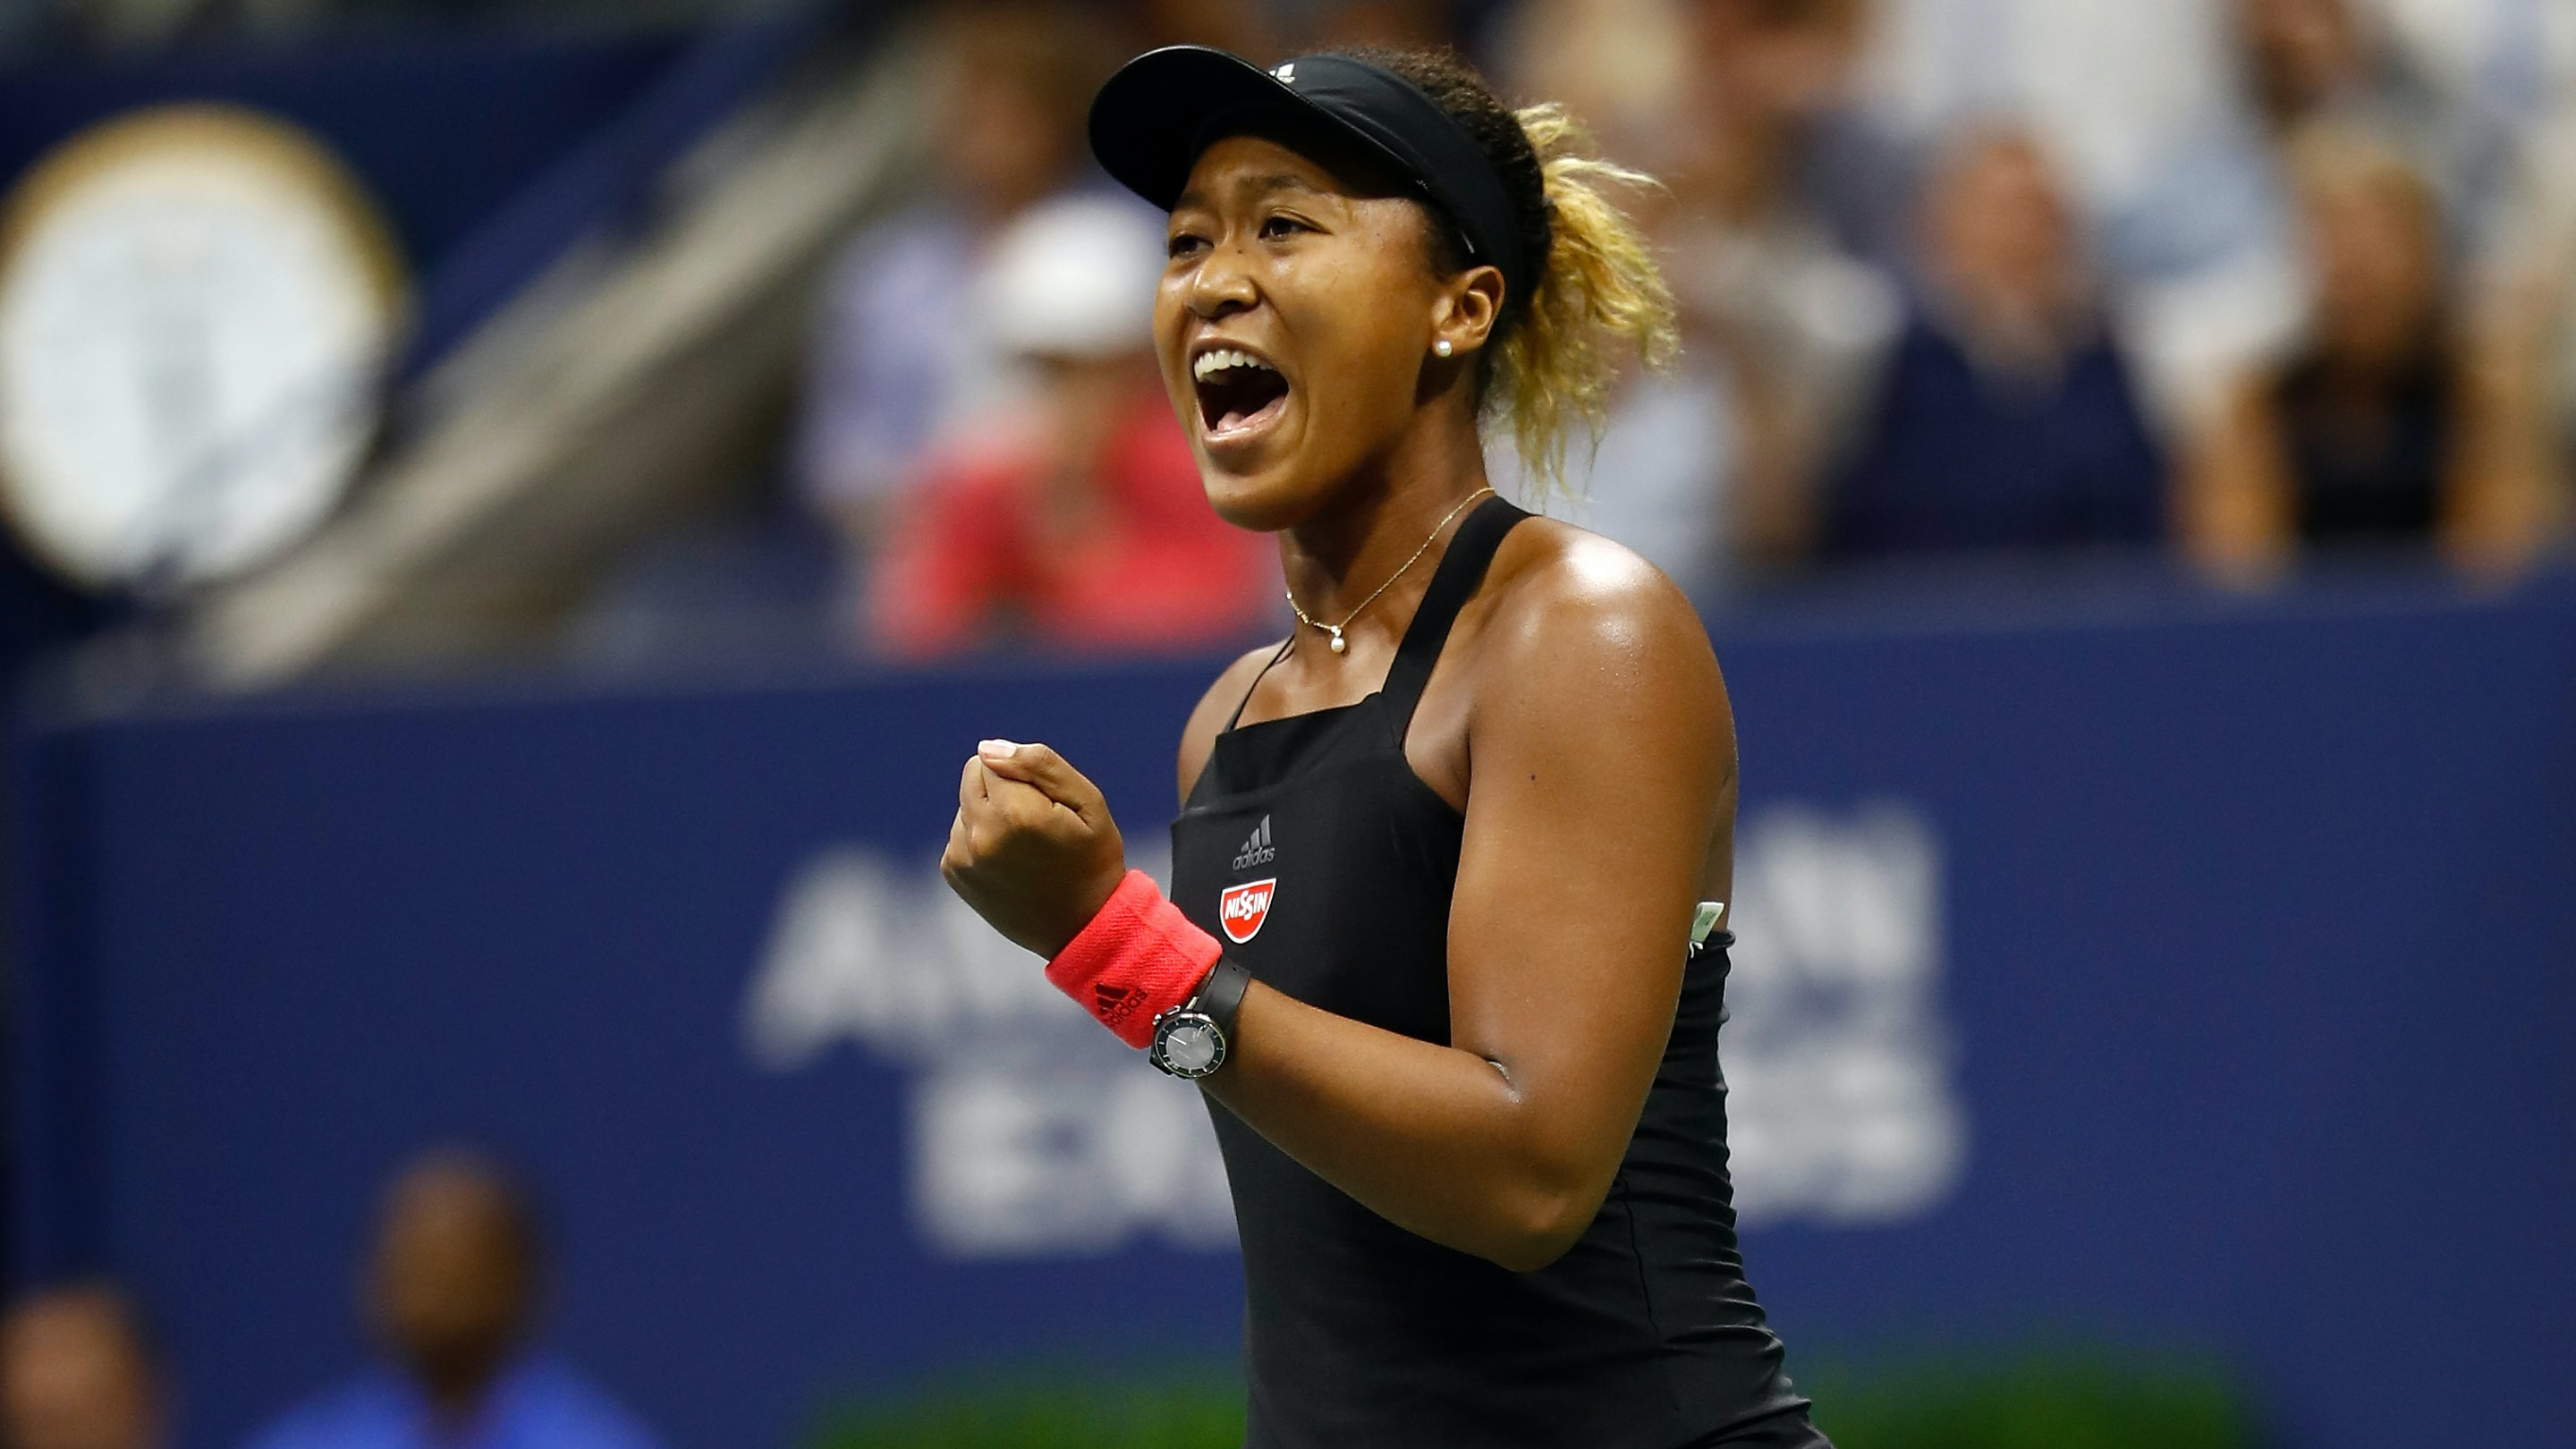 Watch Spotting: Naomi Osaka Wins the U.S. Open While Wearing A Citizen citizen h